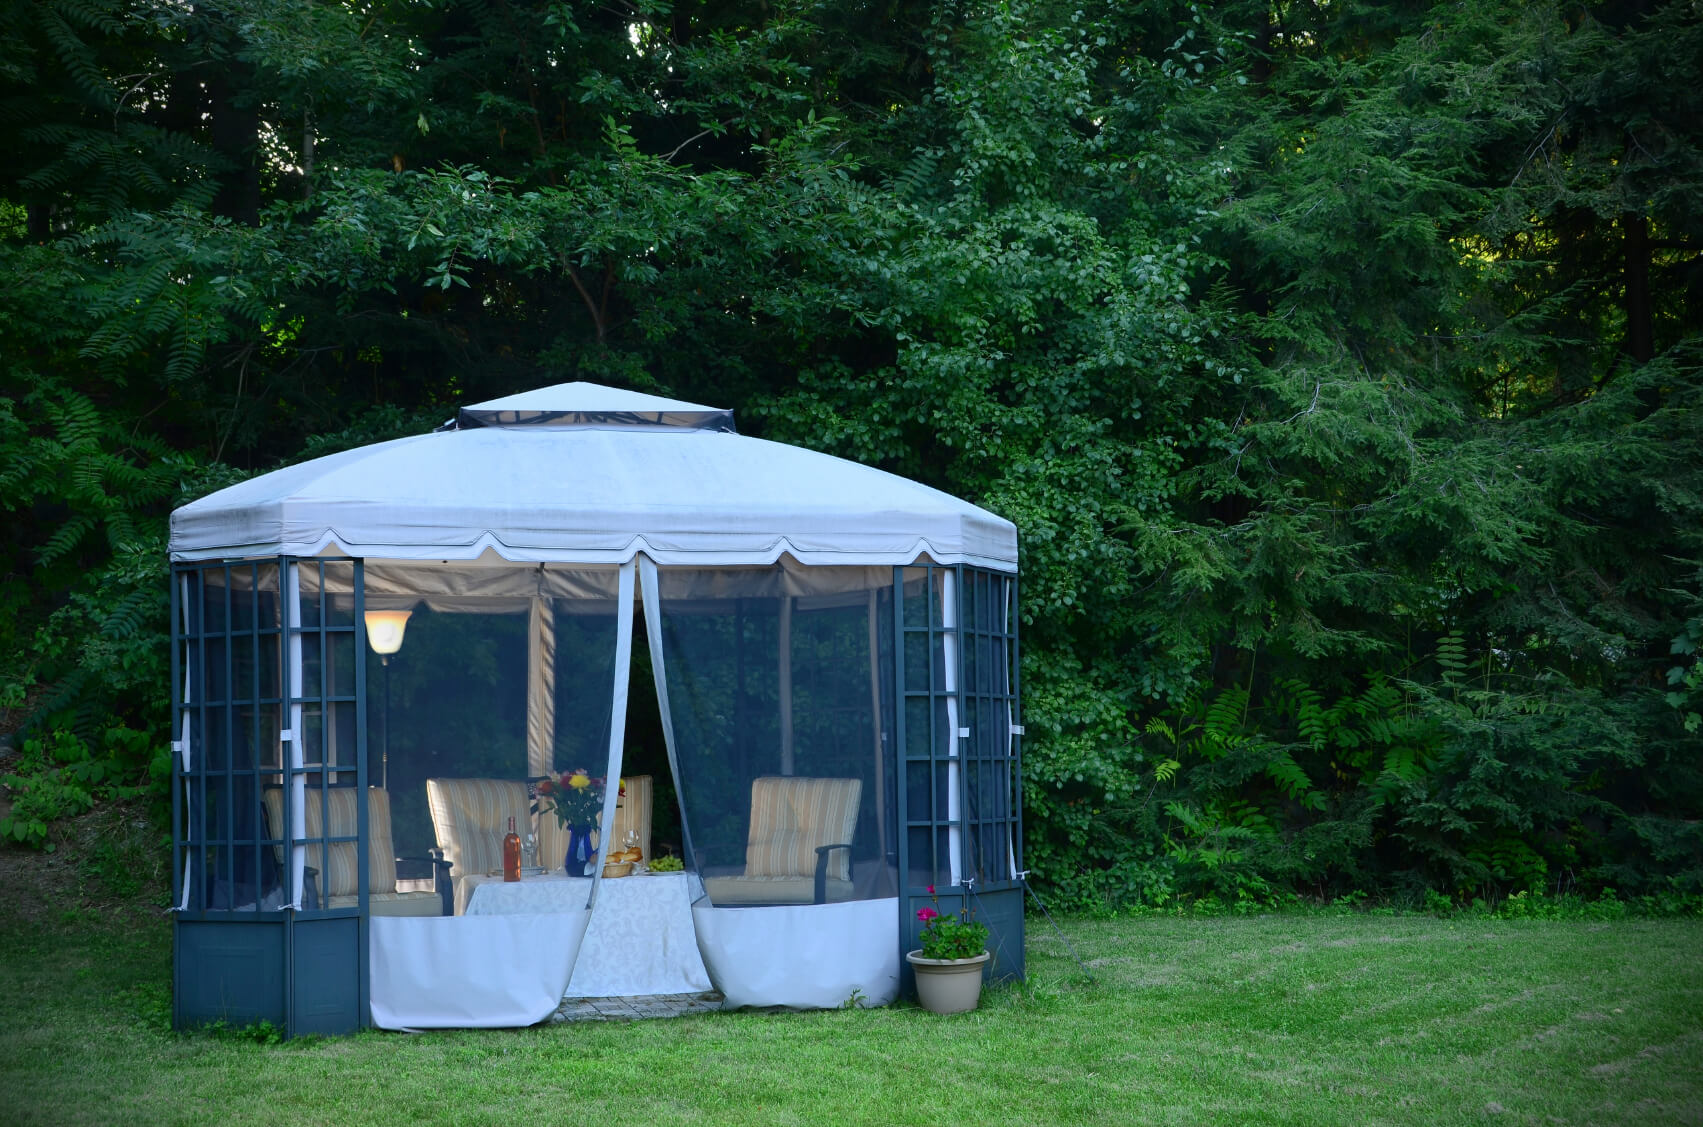 & 27 Gazebos With Screens For Bug Free Backyard Relaxation